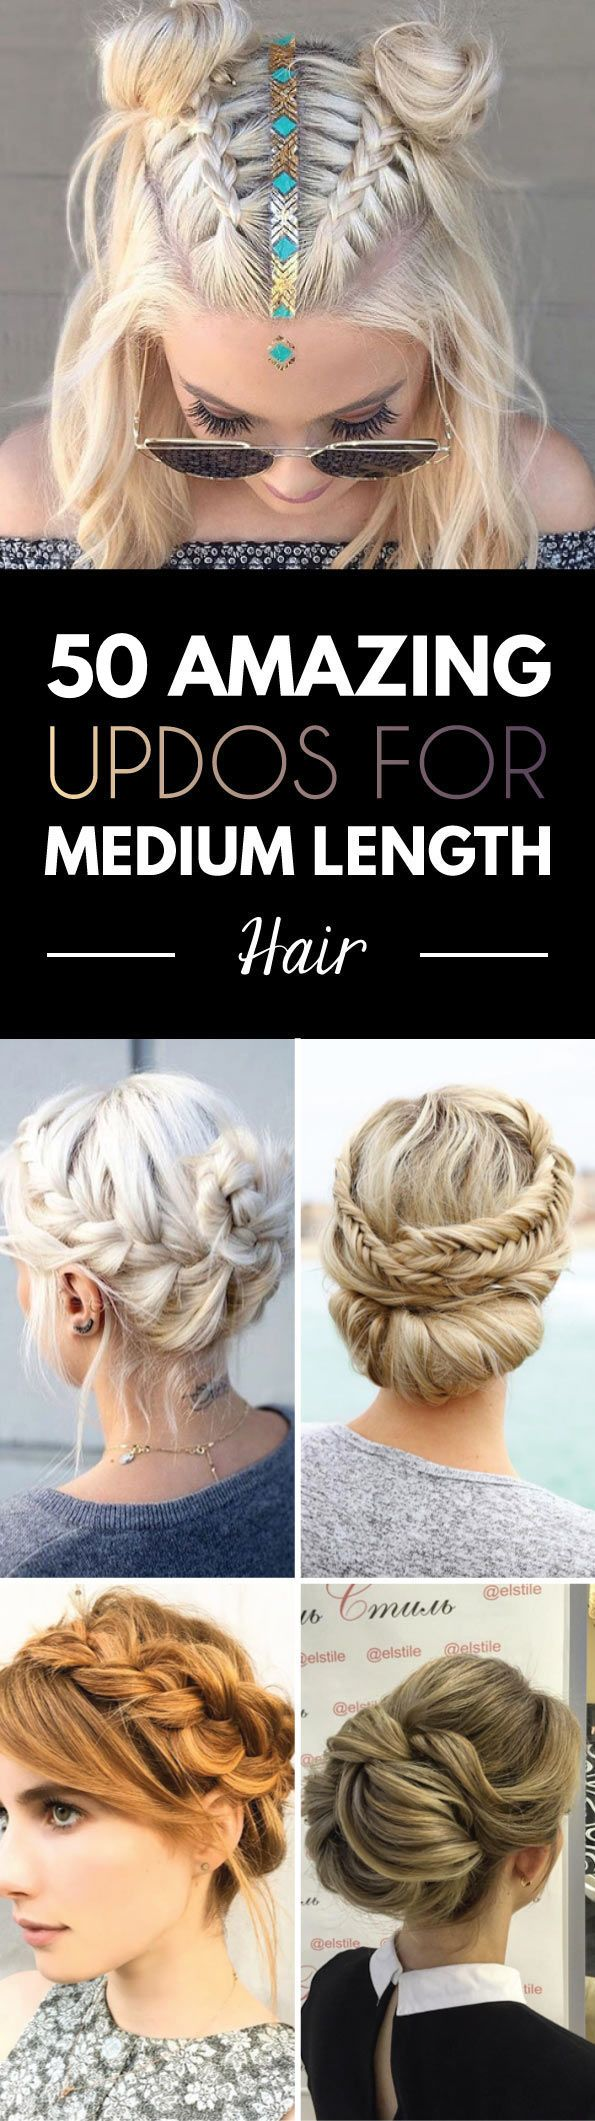 Share Tweet Pin Mail Deconstructed fishtail updo. (Letitia Booth) Low braided up...